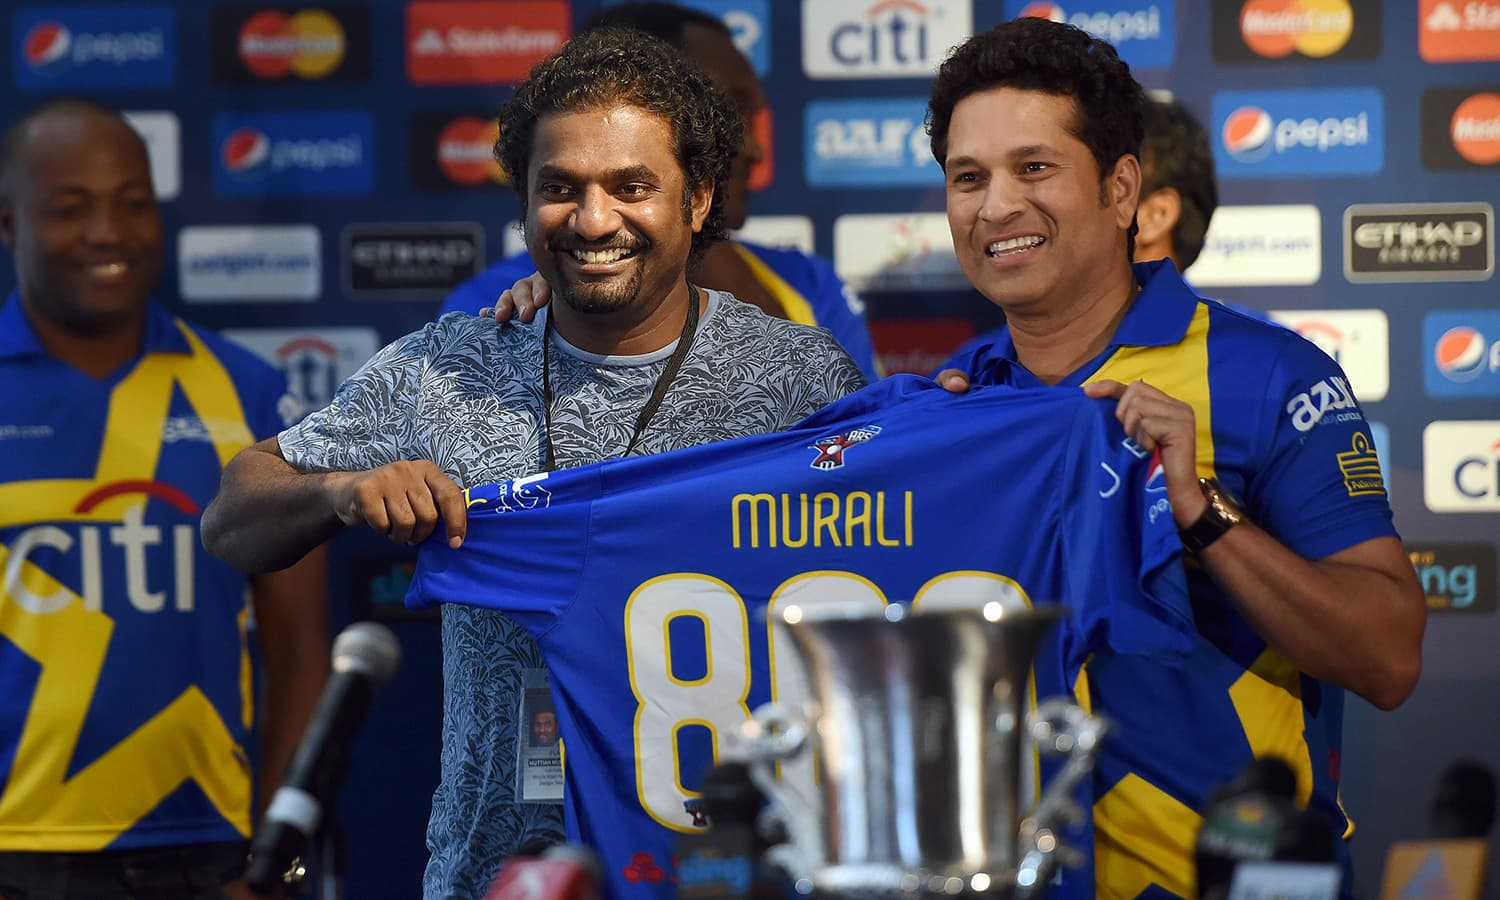 """Retired Indian cricketer Sachin Tendulkar (R) and Sri Lanka's Muttiah Muralitharan pose during a press conference in New York on November 5, 2015. Tenduklar and Australia's Shane Warne will lead a lineup of renowned cricket players from around the world in the inaugural """"Cricket All-Stars,"""" a three-game series to be played in Major League Baseball stadiums in New York , Houston and Los Angeles, to promote cricket the US. AFP PHOTO/JEWEL SAMAD"""